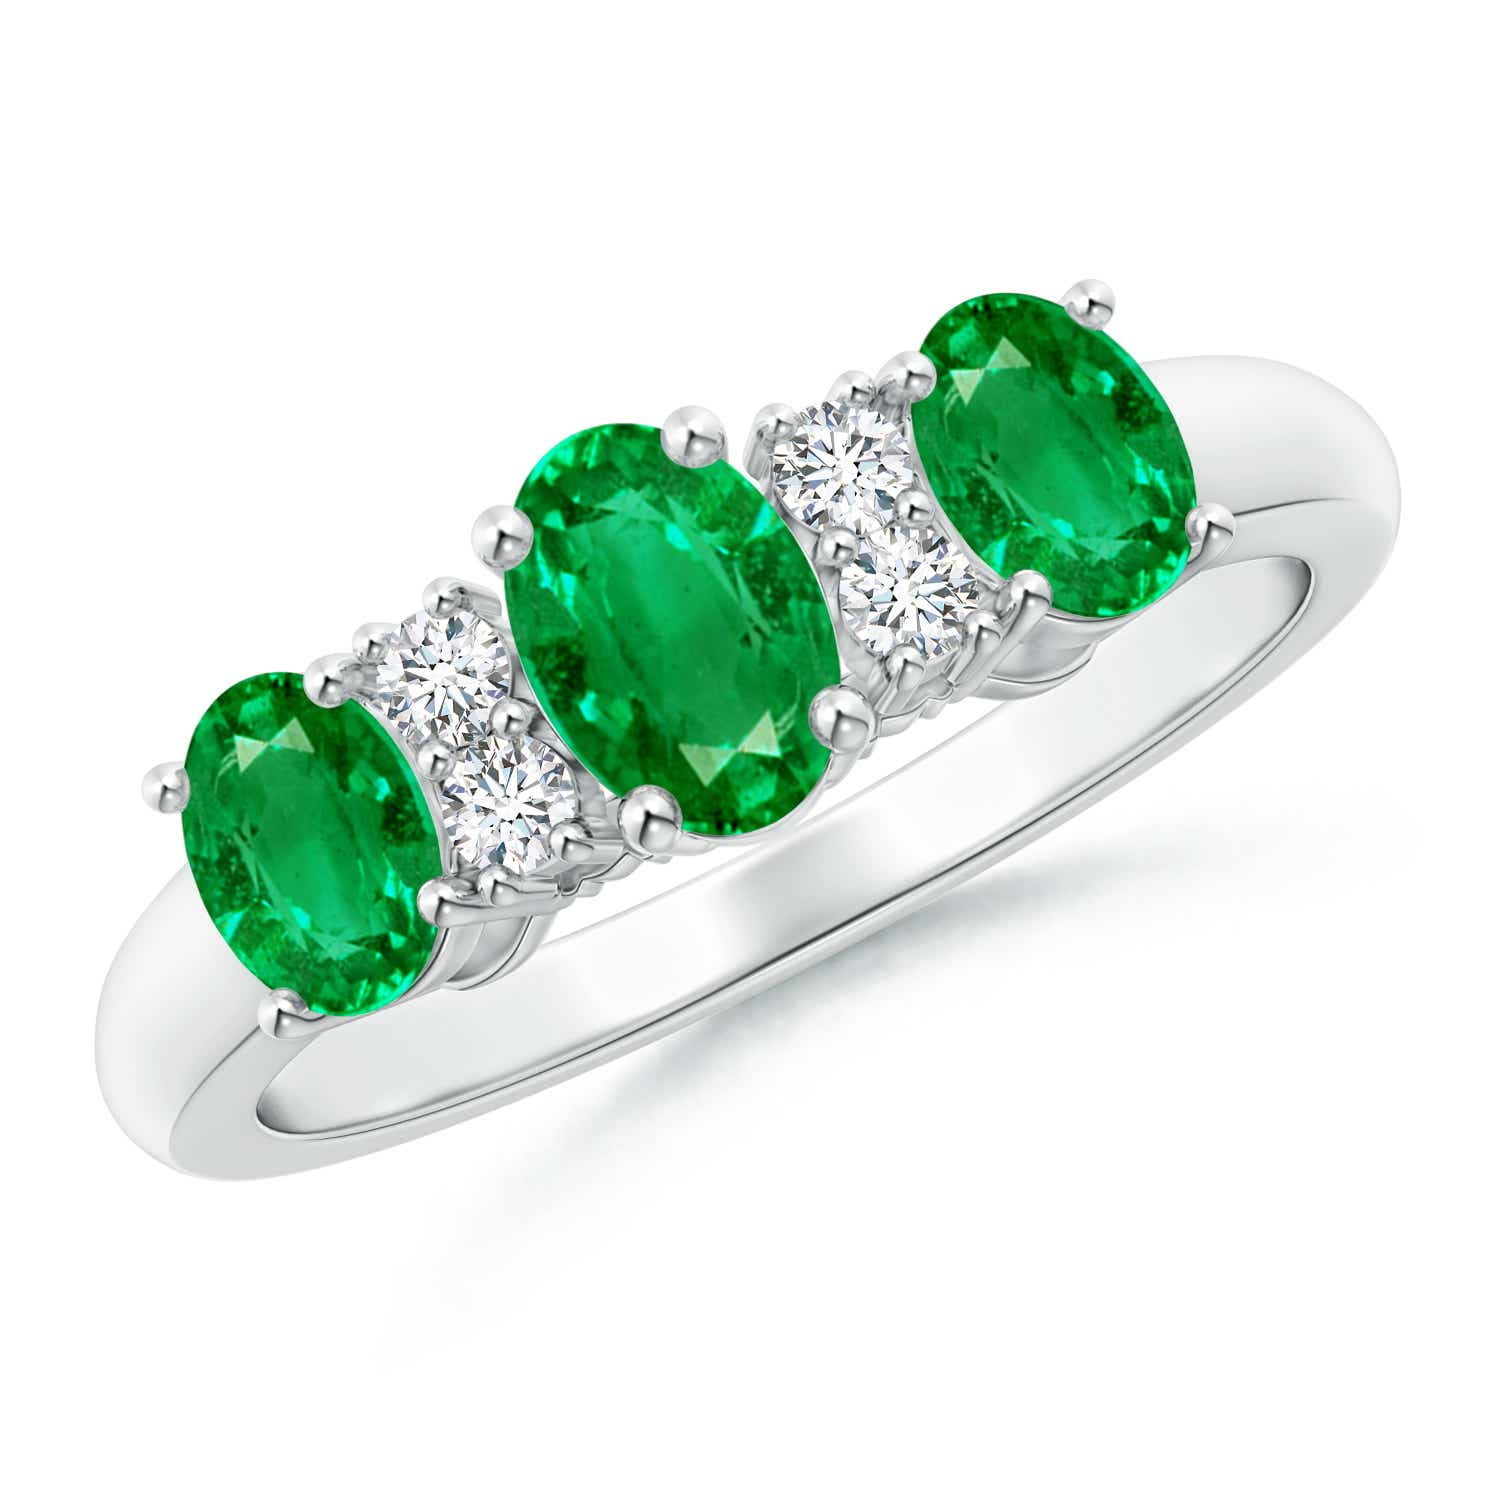 Oval Three Stone Emerald Engagement Ring With Diamonds